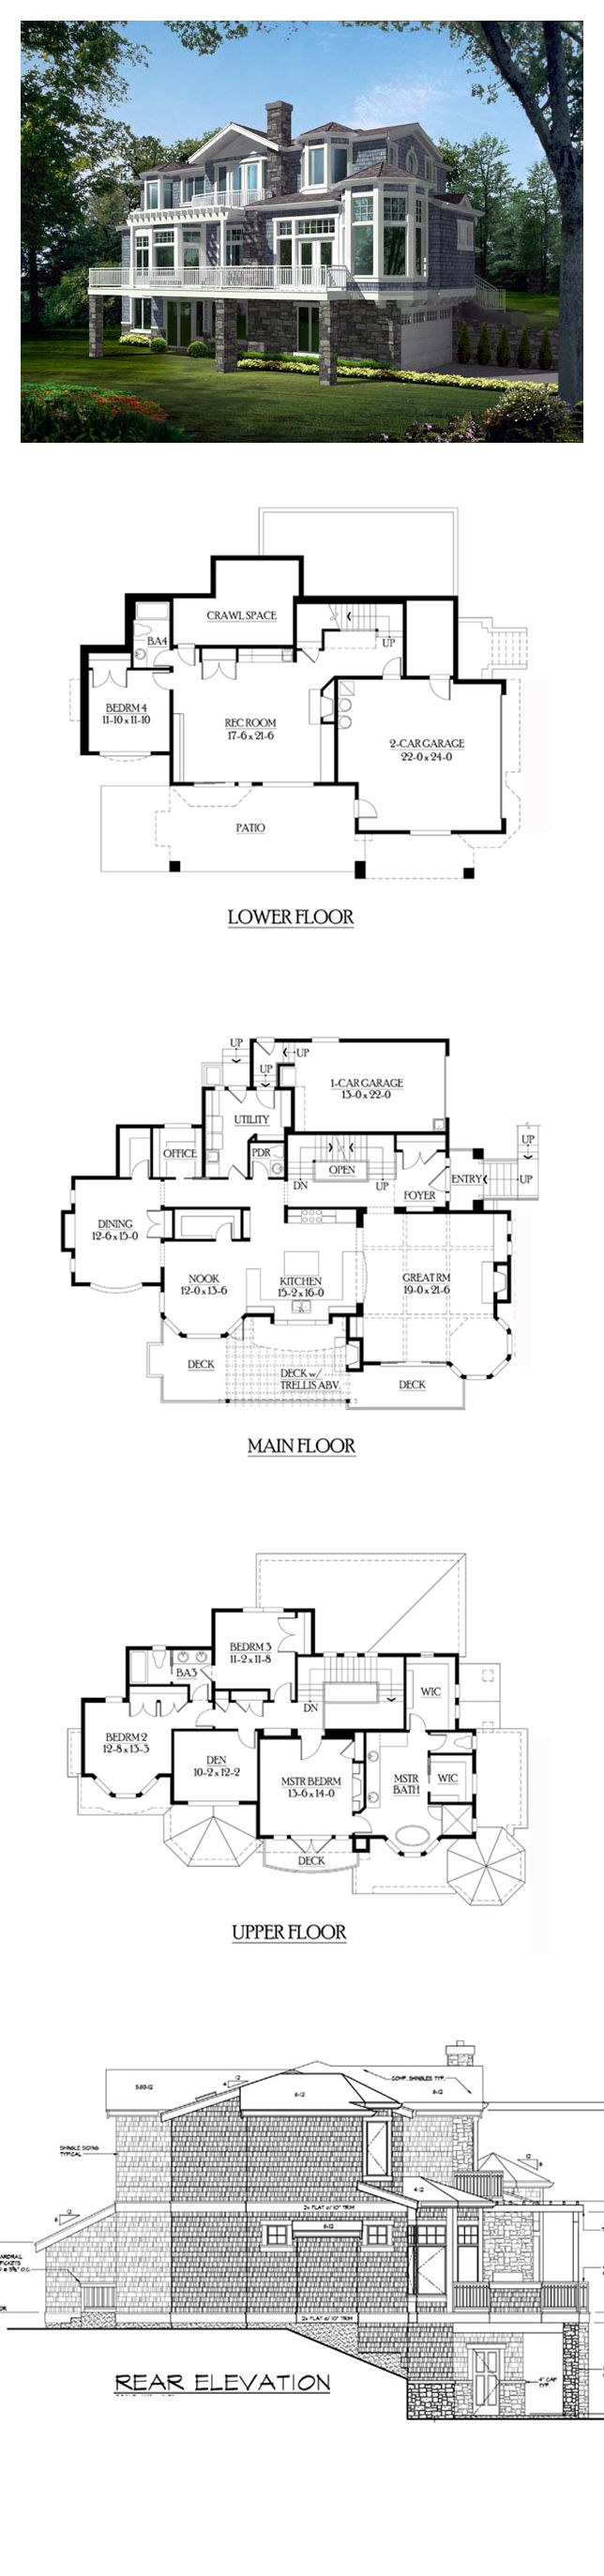 Shingle Style COOL House Plan ID: chp-39334 | Total Living Area: 4036 sq. ft., 4 bedrooms & 3.5 bathrooms. #houseplan #shinglestylehome